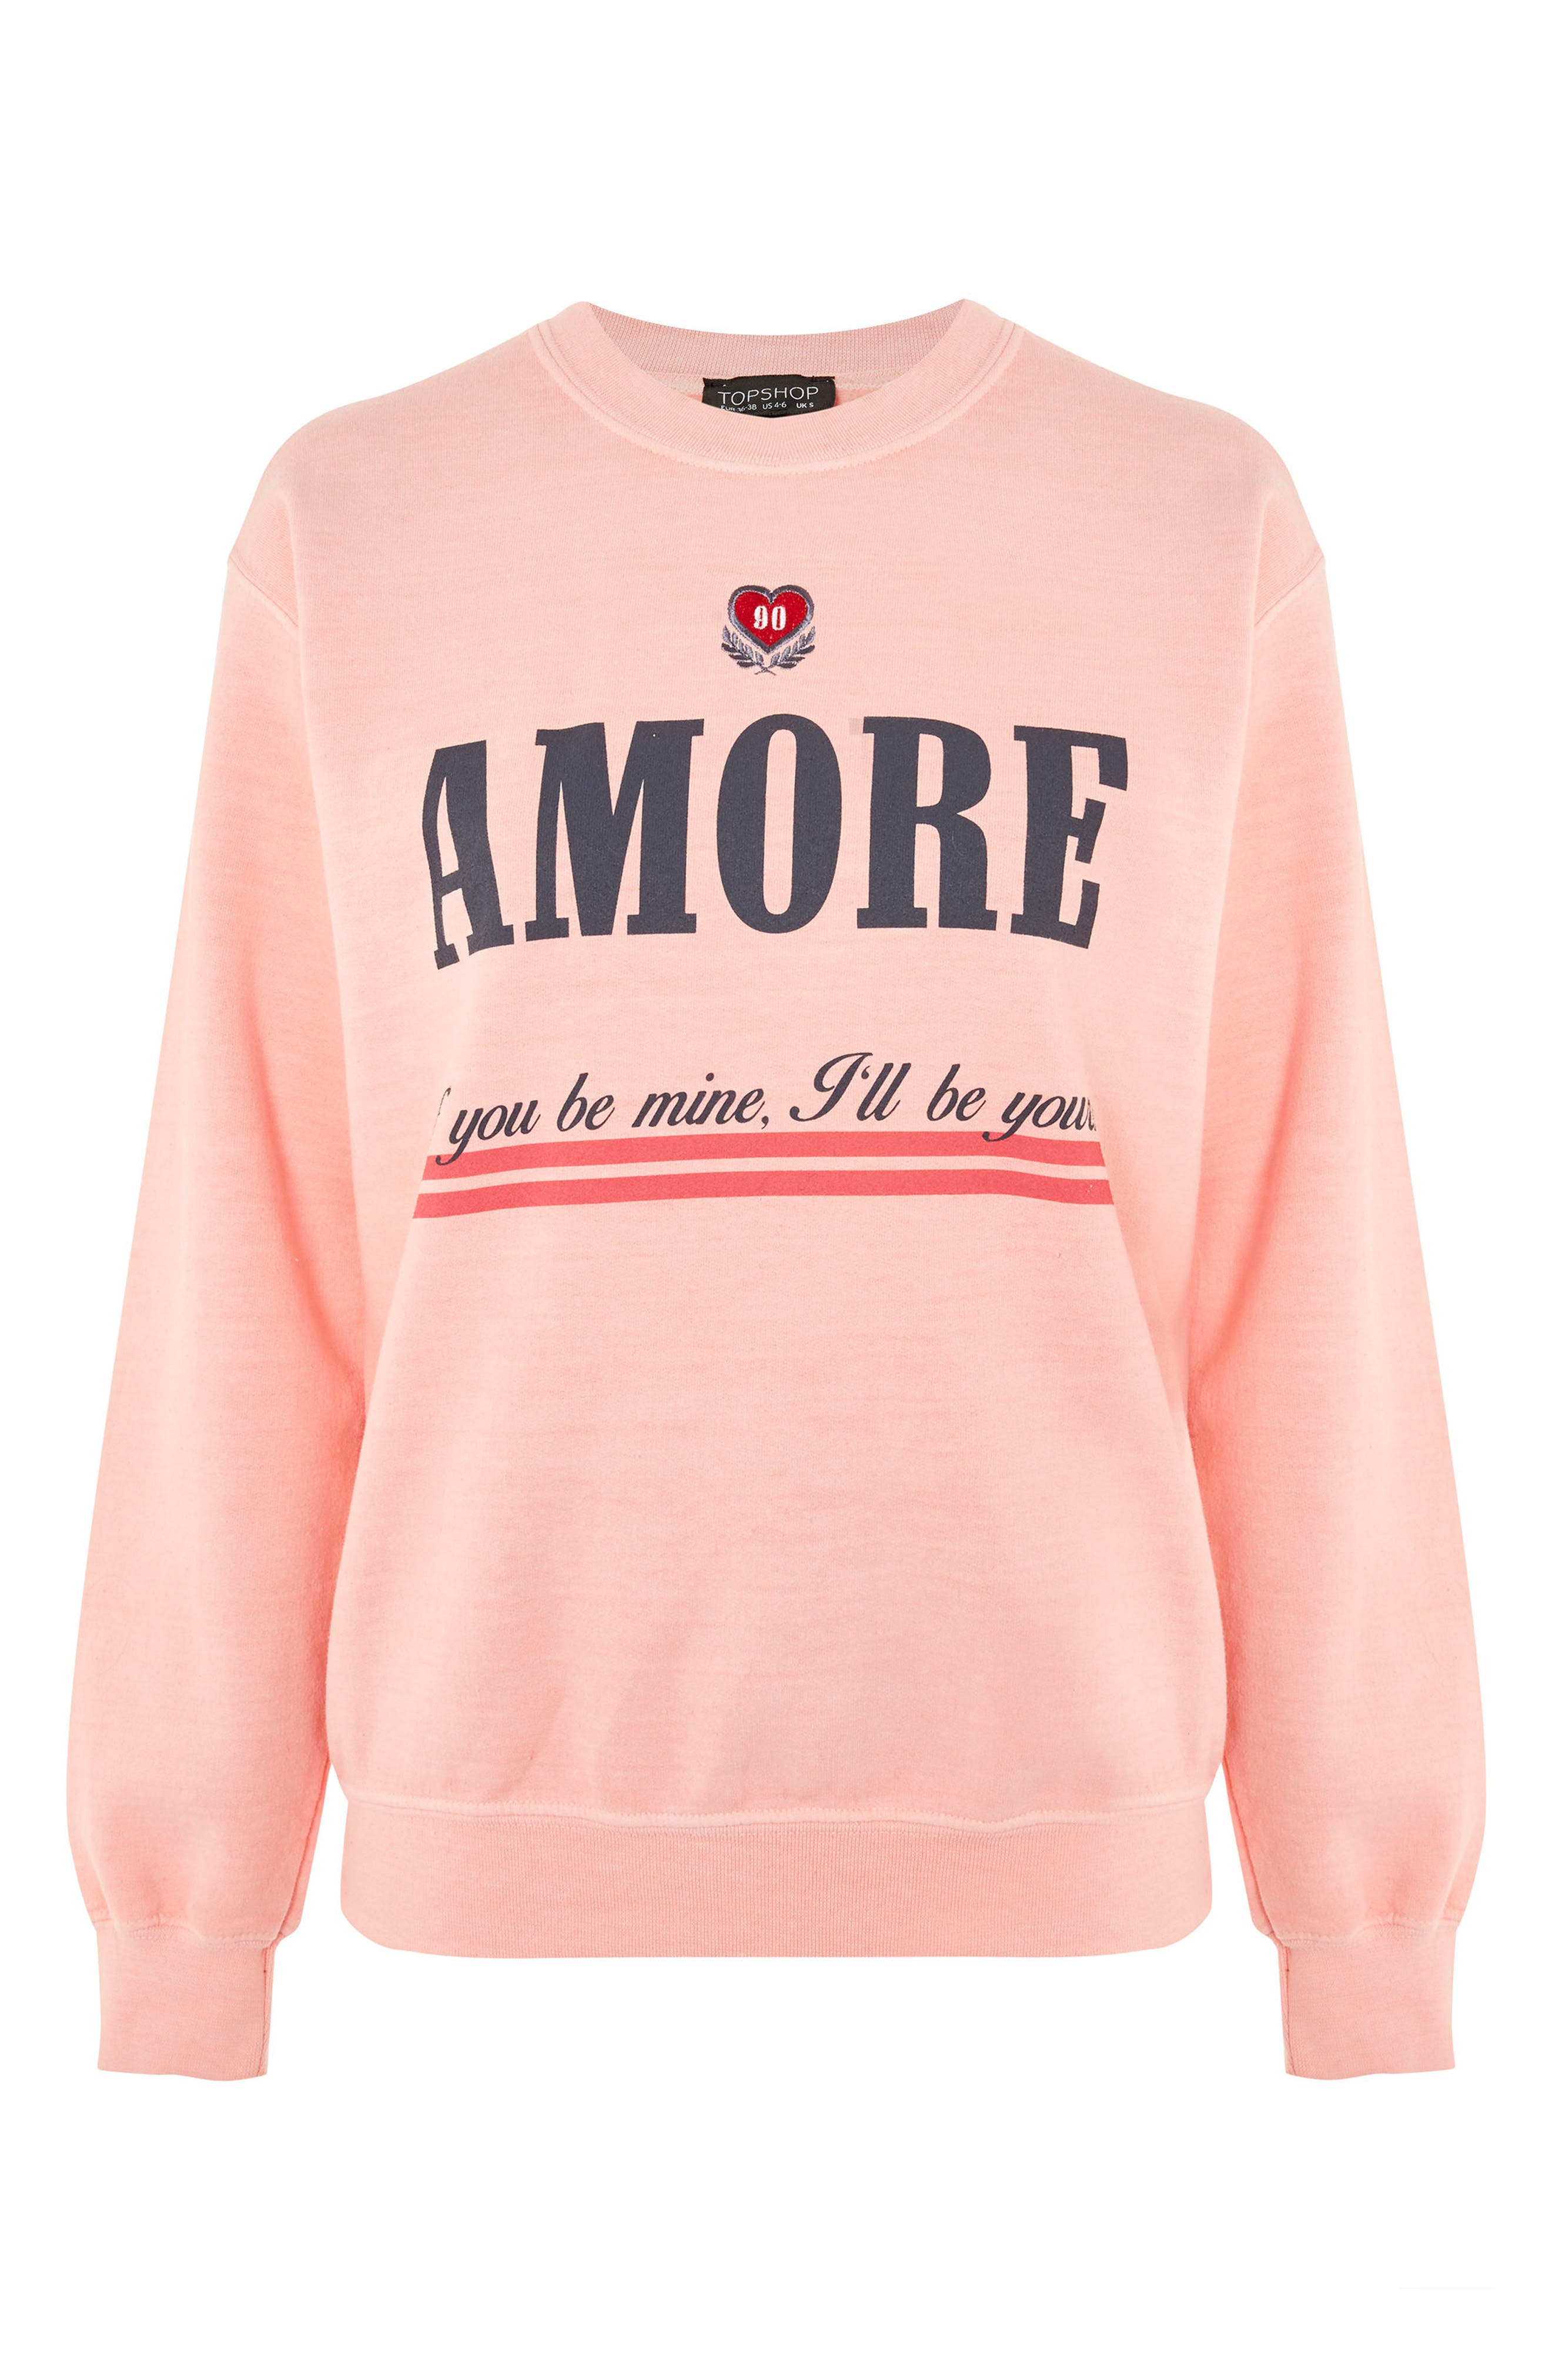 Embroidered Amore Sweatshirt,                             Alternate thumbnail 3, color,                             950